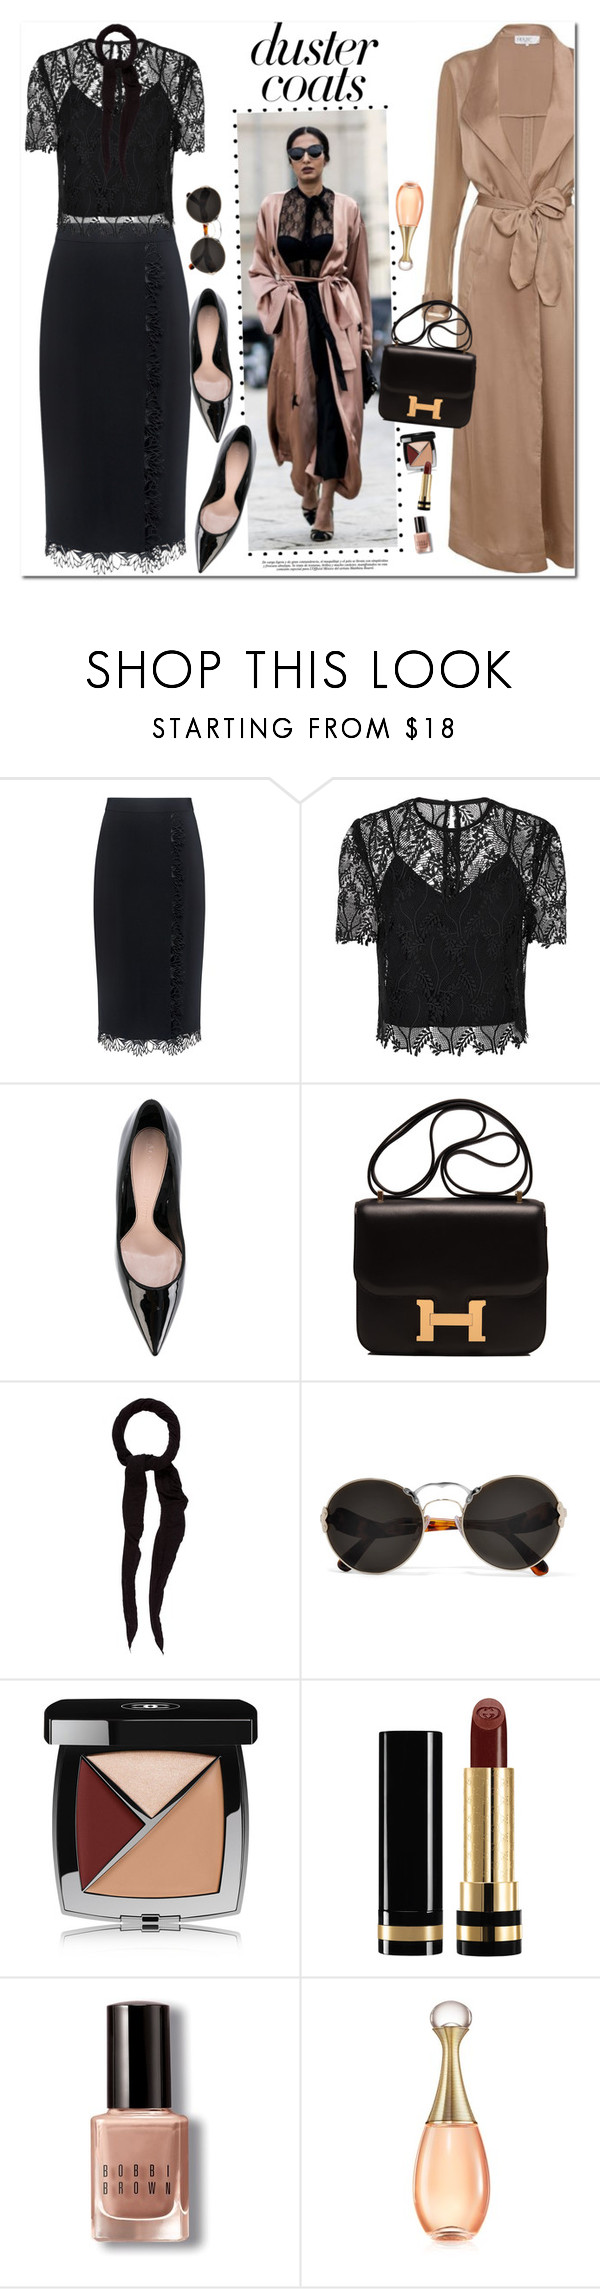 """""""Duster Coats"""" by oshint ❤ liked on Polyvore featuring A.L.C., Diane Von Furstenberg, Alexander McQueen, Hermès, Faliero Sarti, Prada, Chanel, Gucci, Bobbi Brown Cosmetics and Christian Dior"""